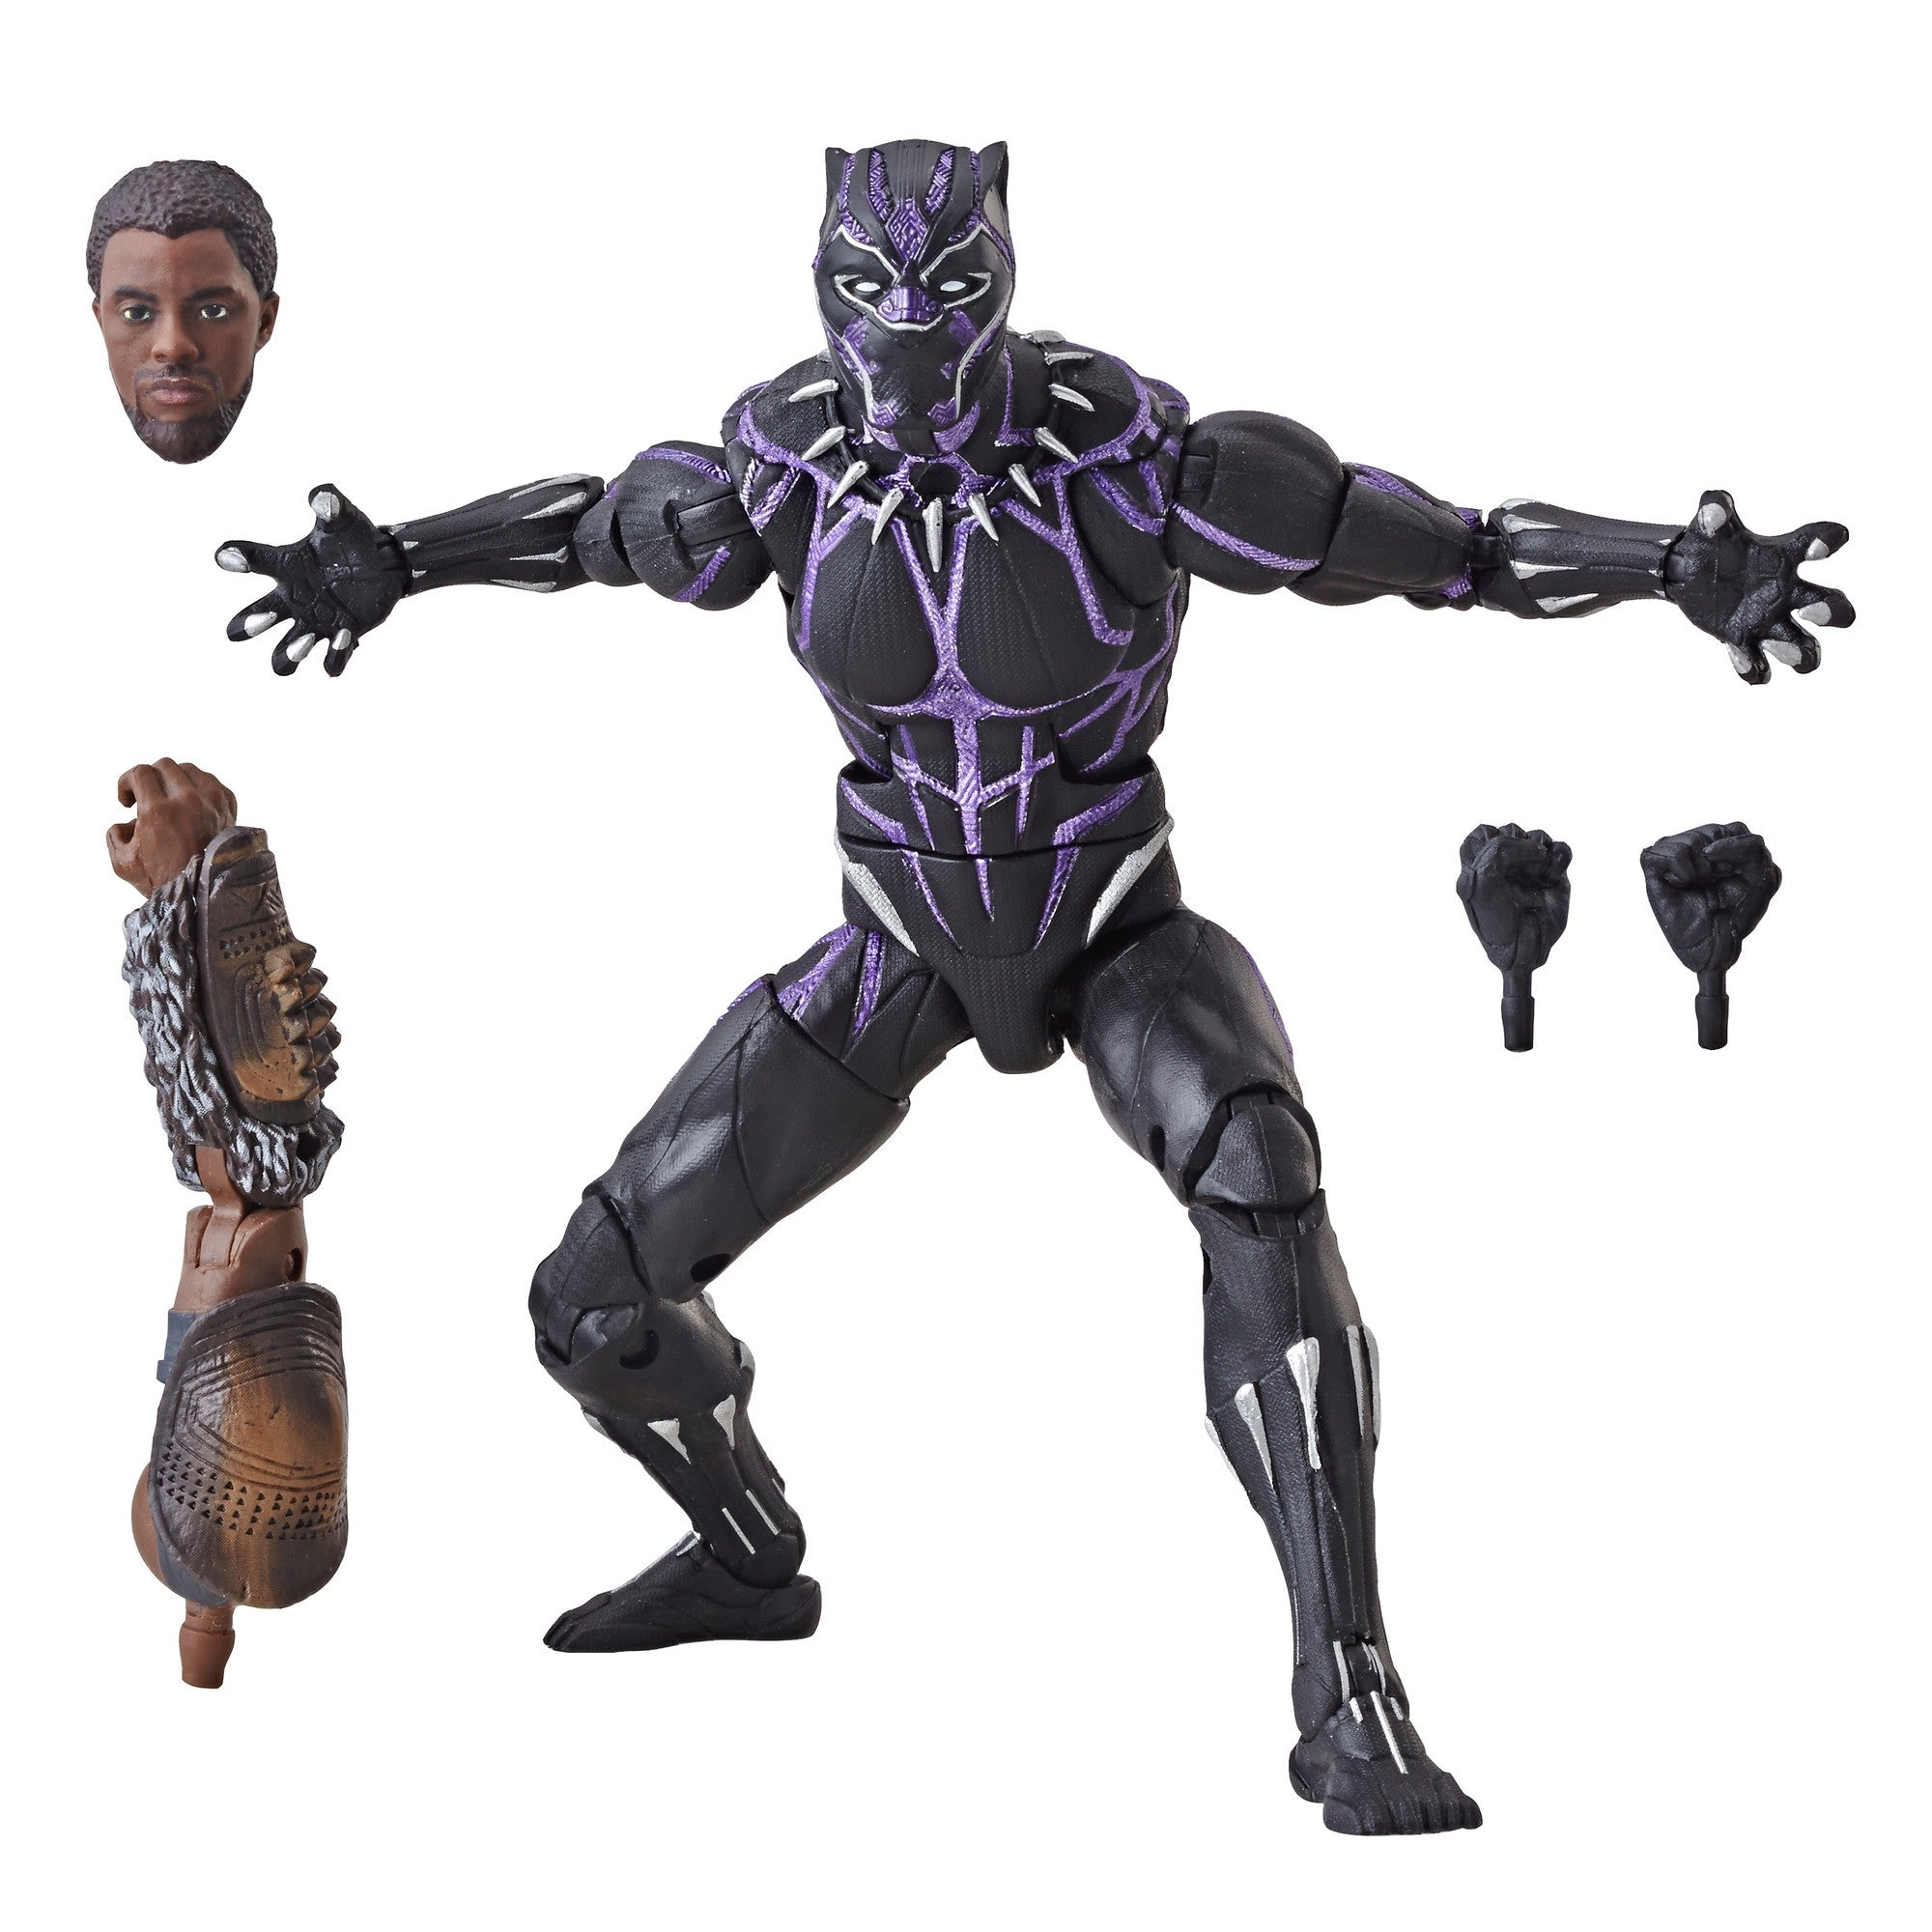 Marvel Legends Black Panther Wave 2 Vibranium Black Panther Action Figure